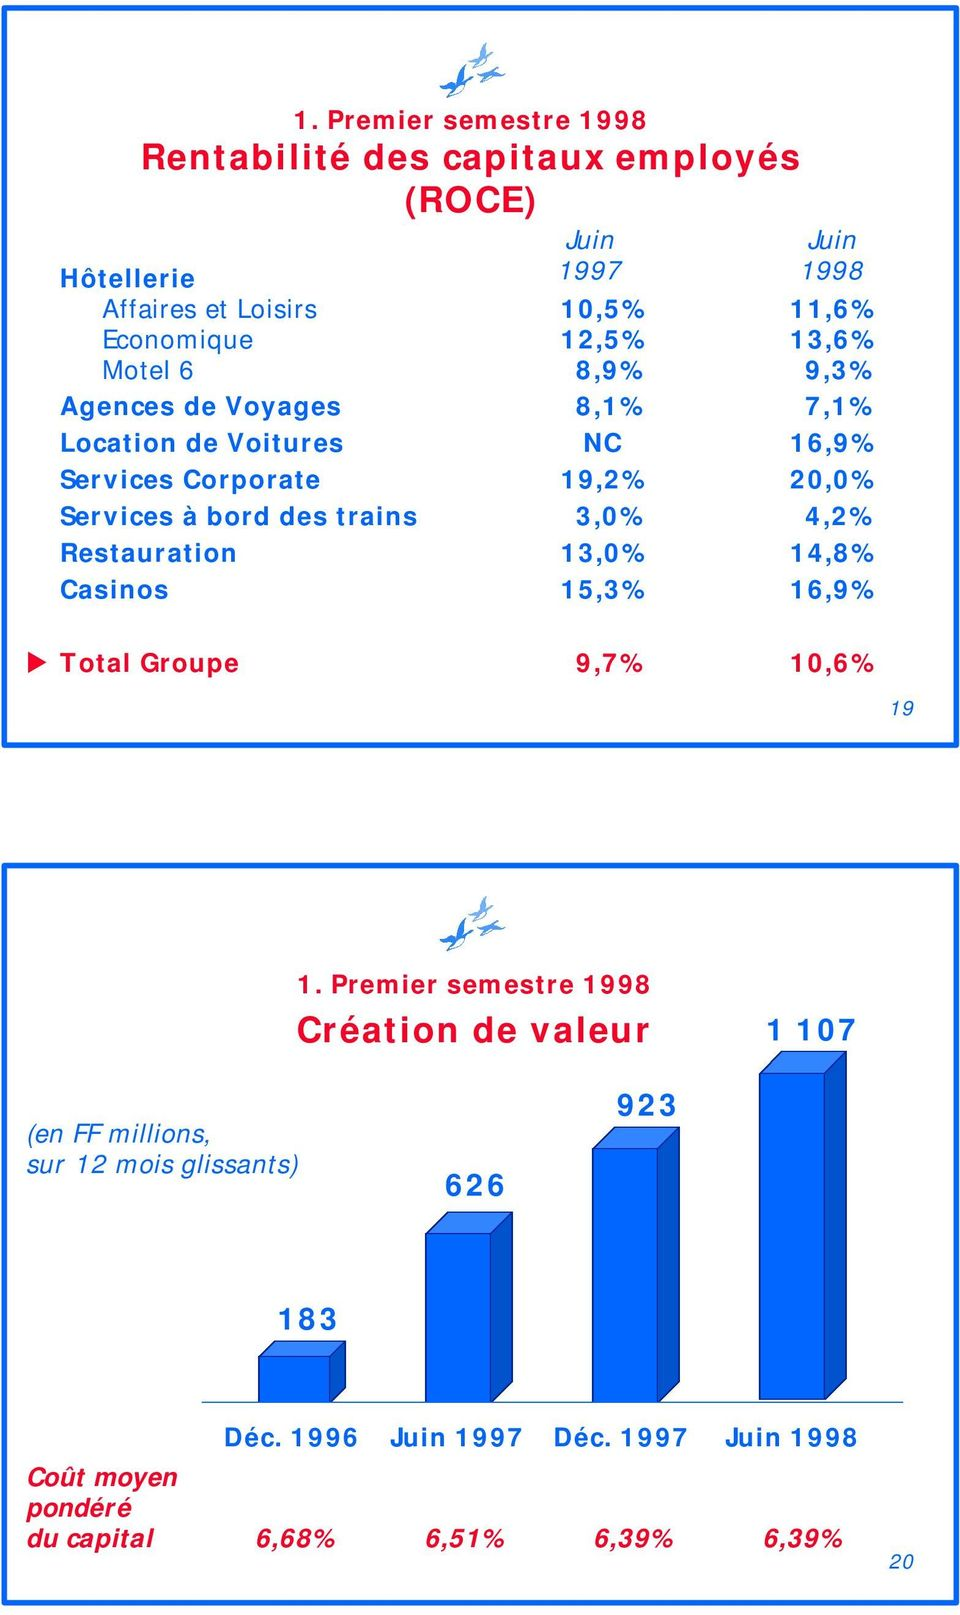 trains 3,0% 4,2% Restauration 13,0% 14,8% Casinos 15,3% 16,9% Total Groupe 9,7% 10,6% 19 1.